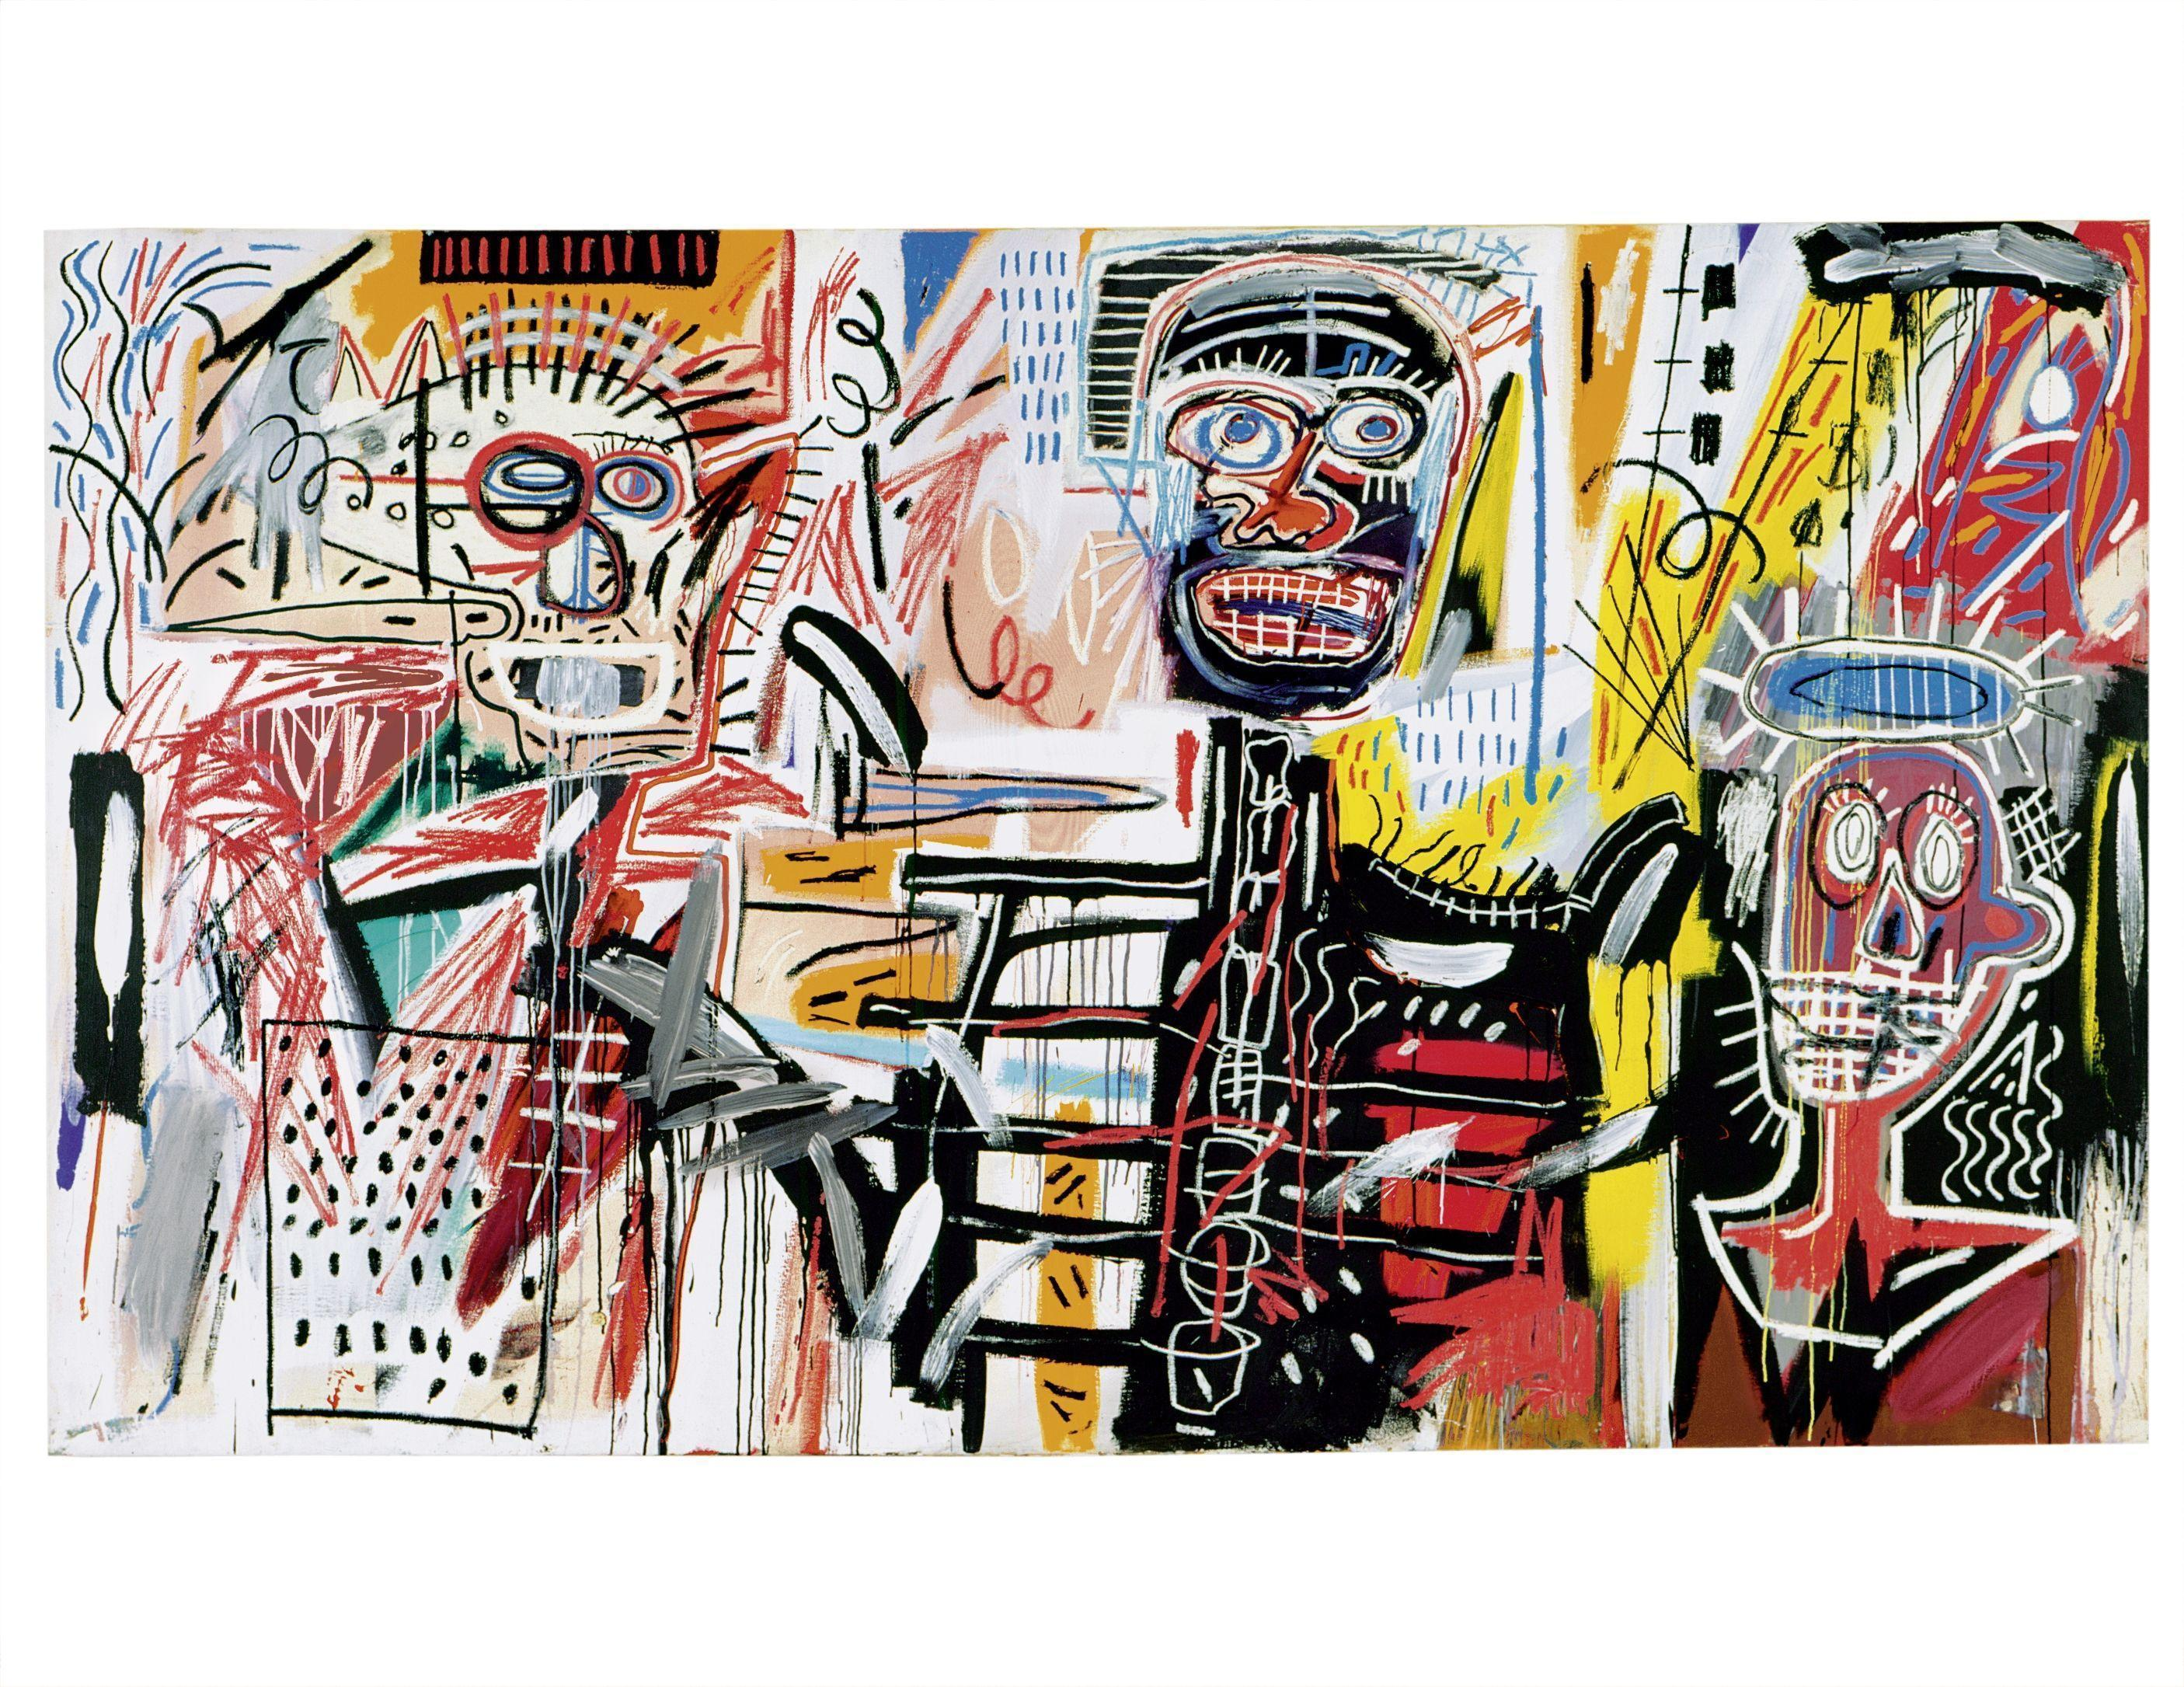 1000+ images about Jean-Michel Basquiat on Pinterest | Acrylics ...